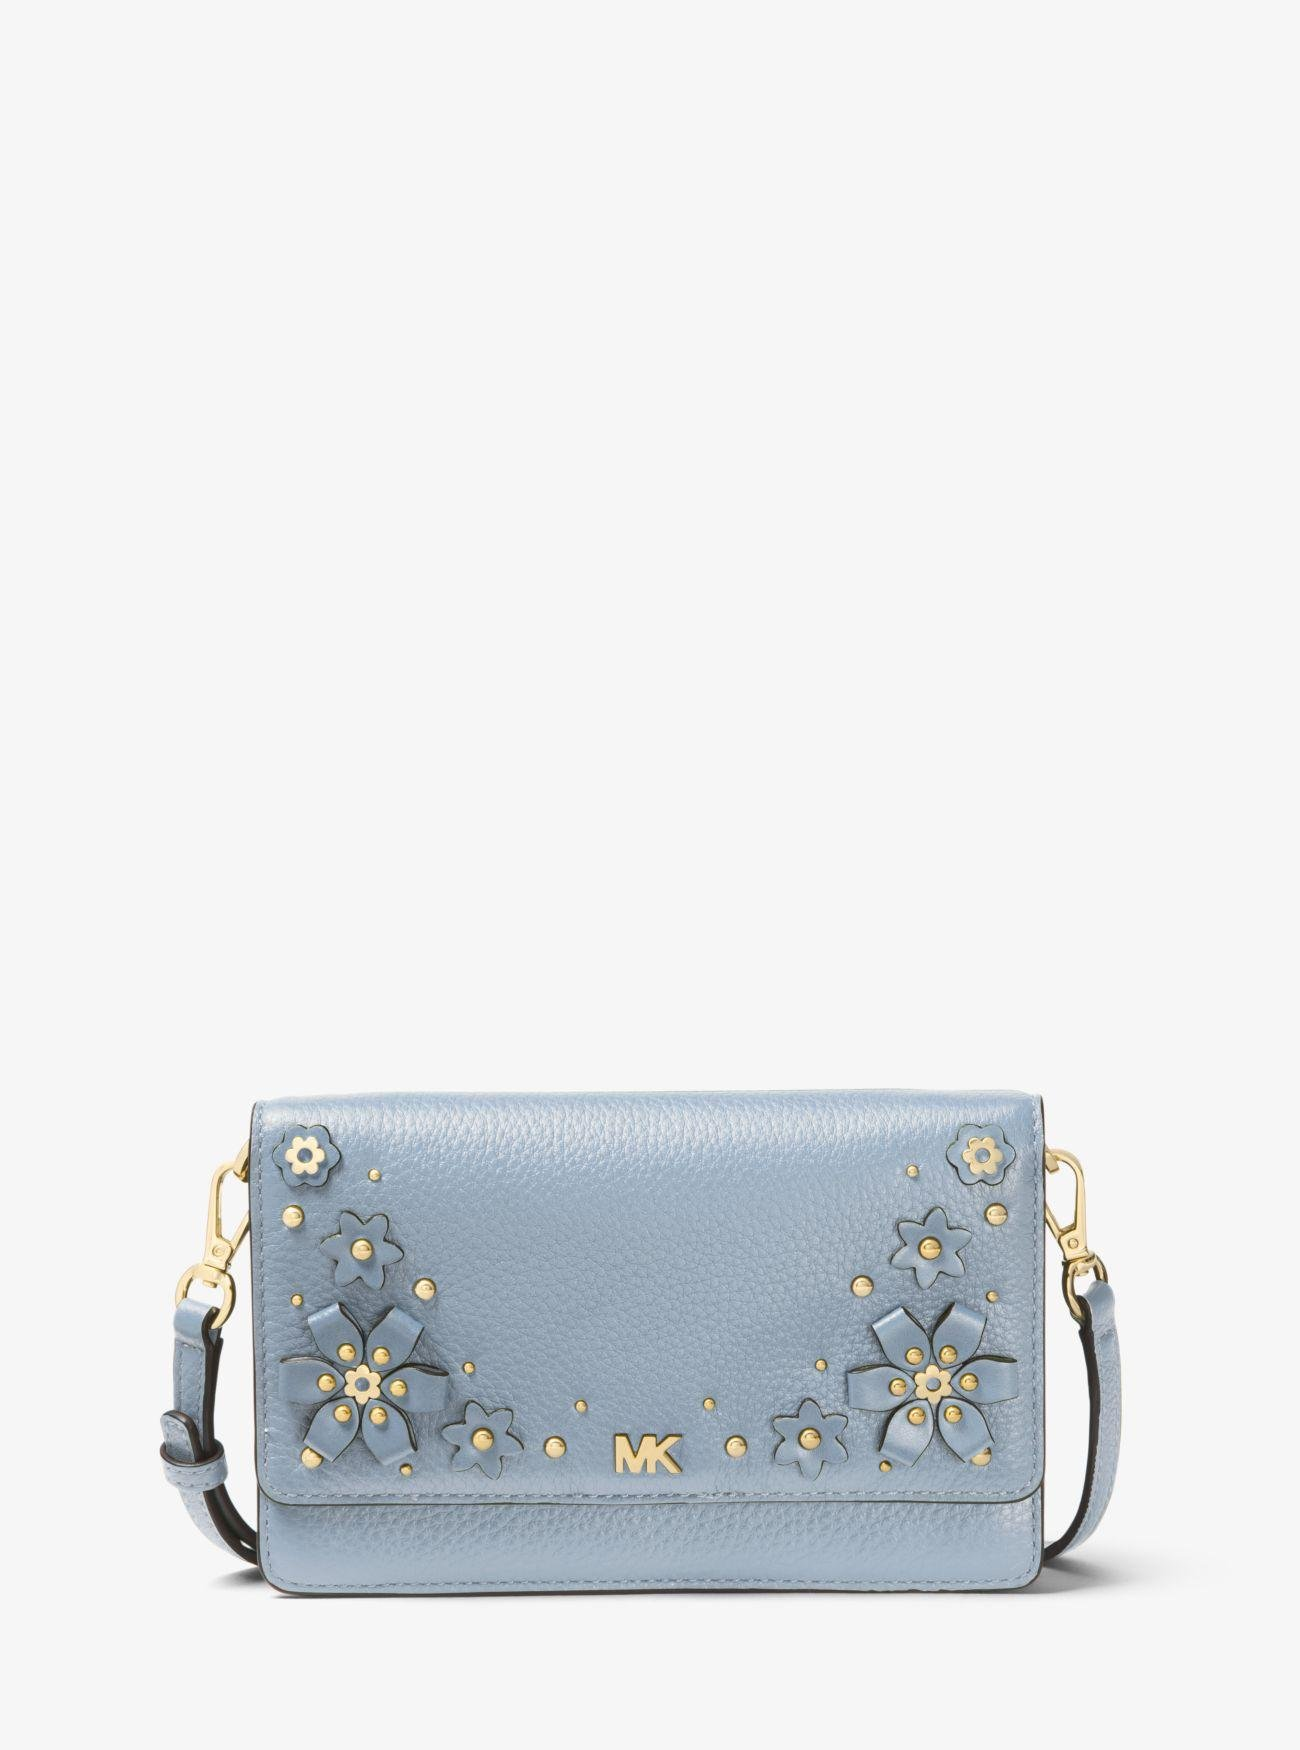 475624ff1 Michael Kors Floral Embellished Pebbled Leather Convertible ...